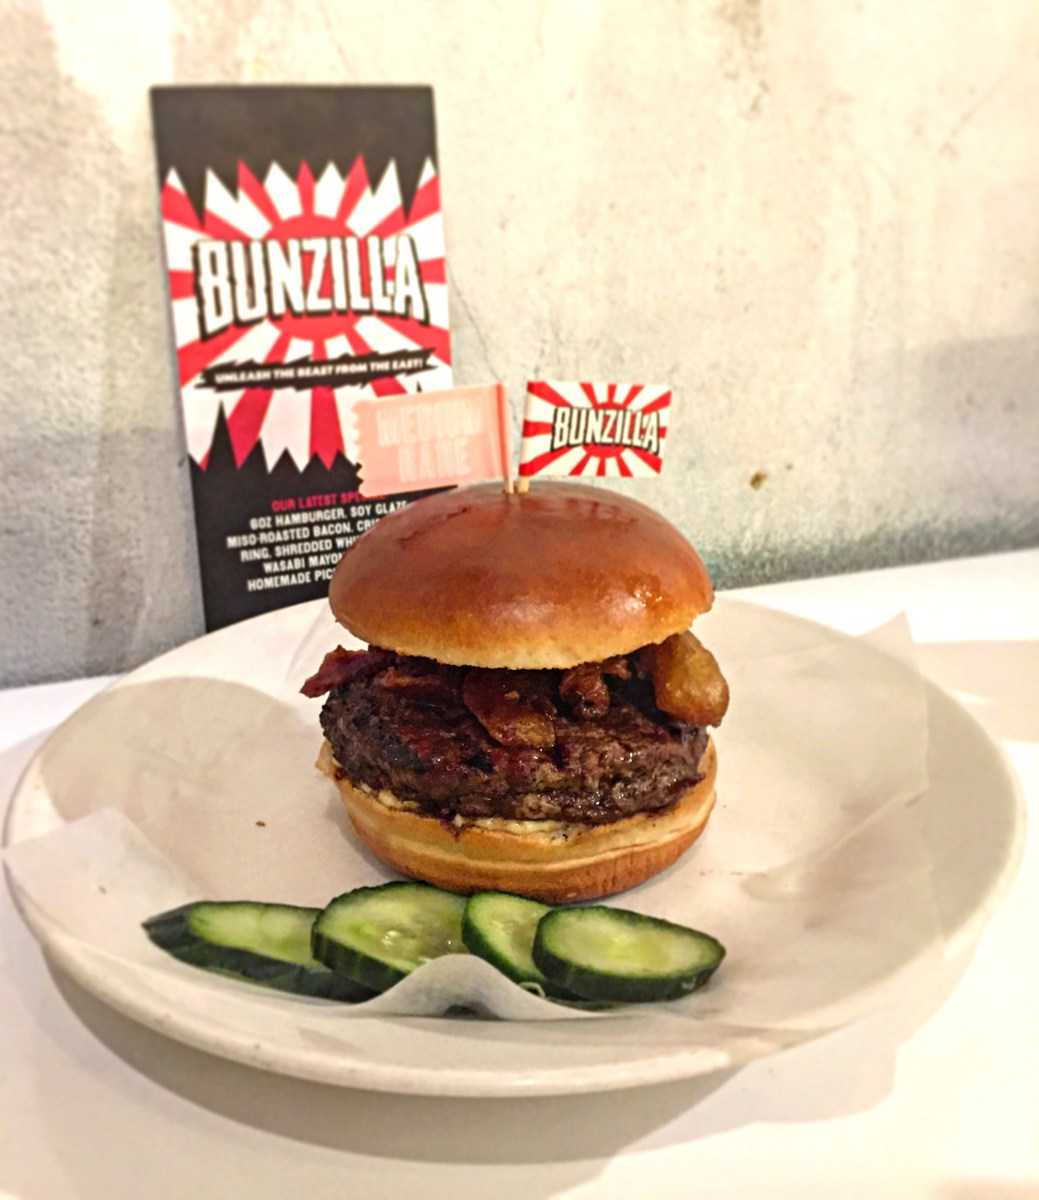 There's A New Monster In Town | Bunzilla, The New Special From Byron Hamburgers